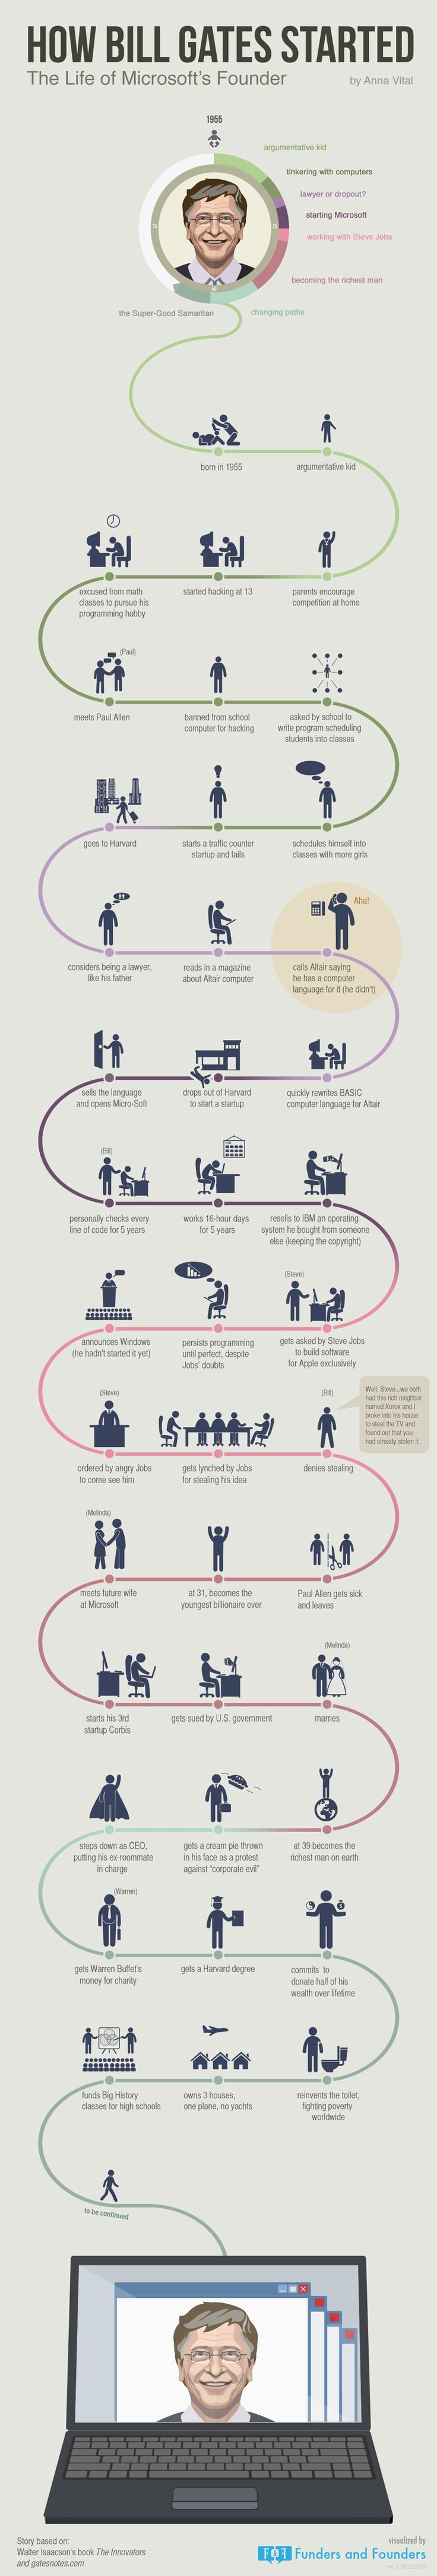 How Bill Gates started, Microsoft founder infographic